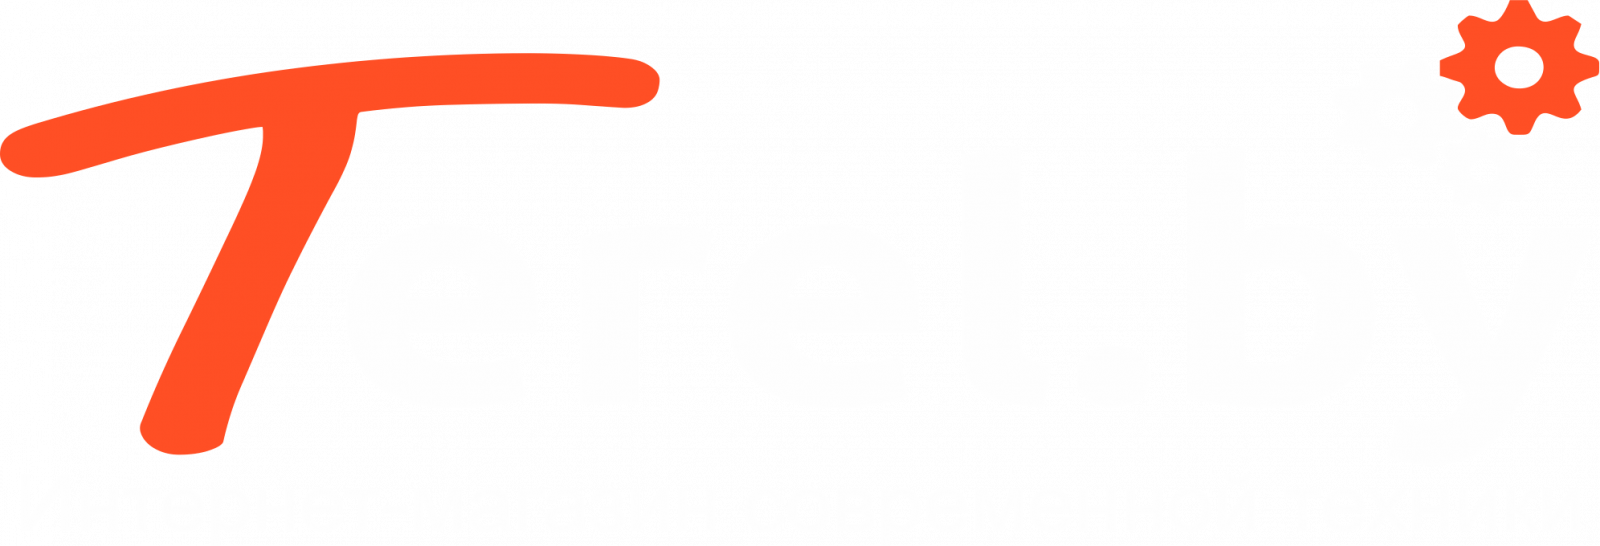 Terel.by